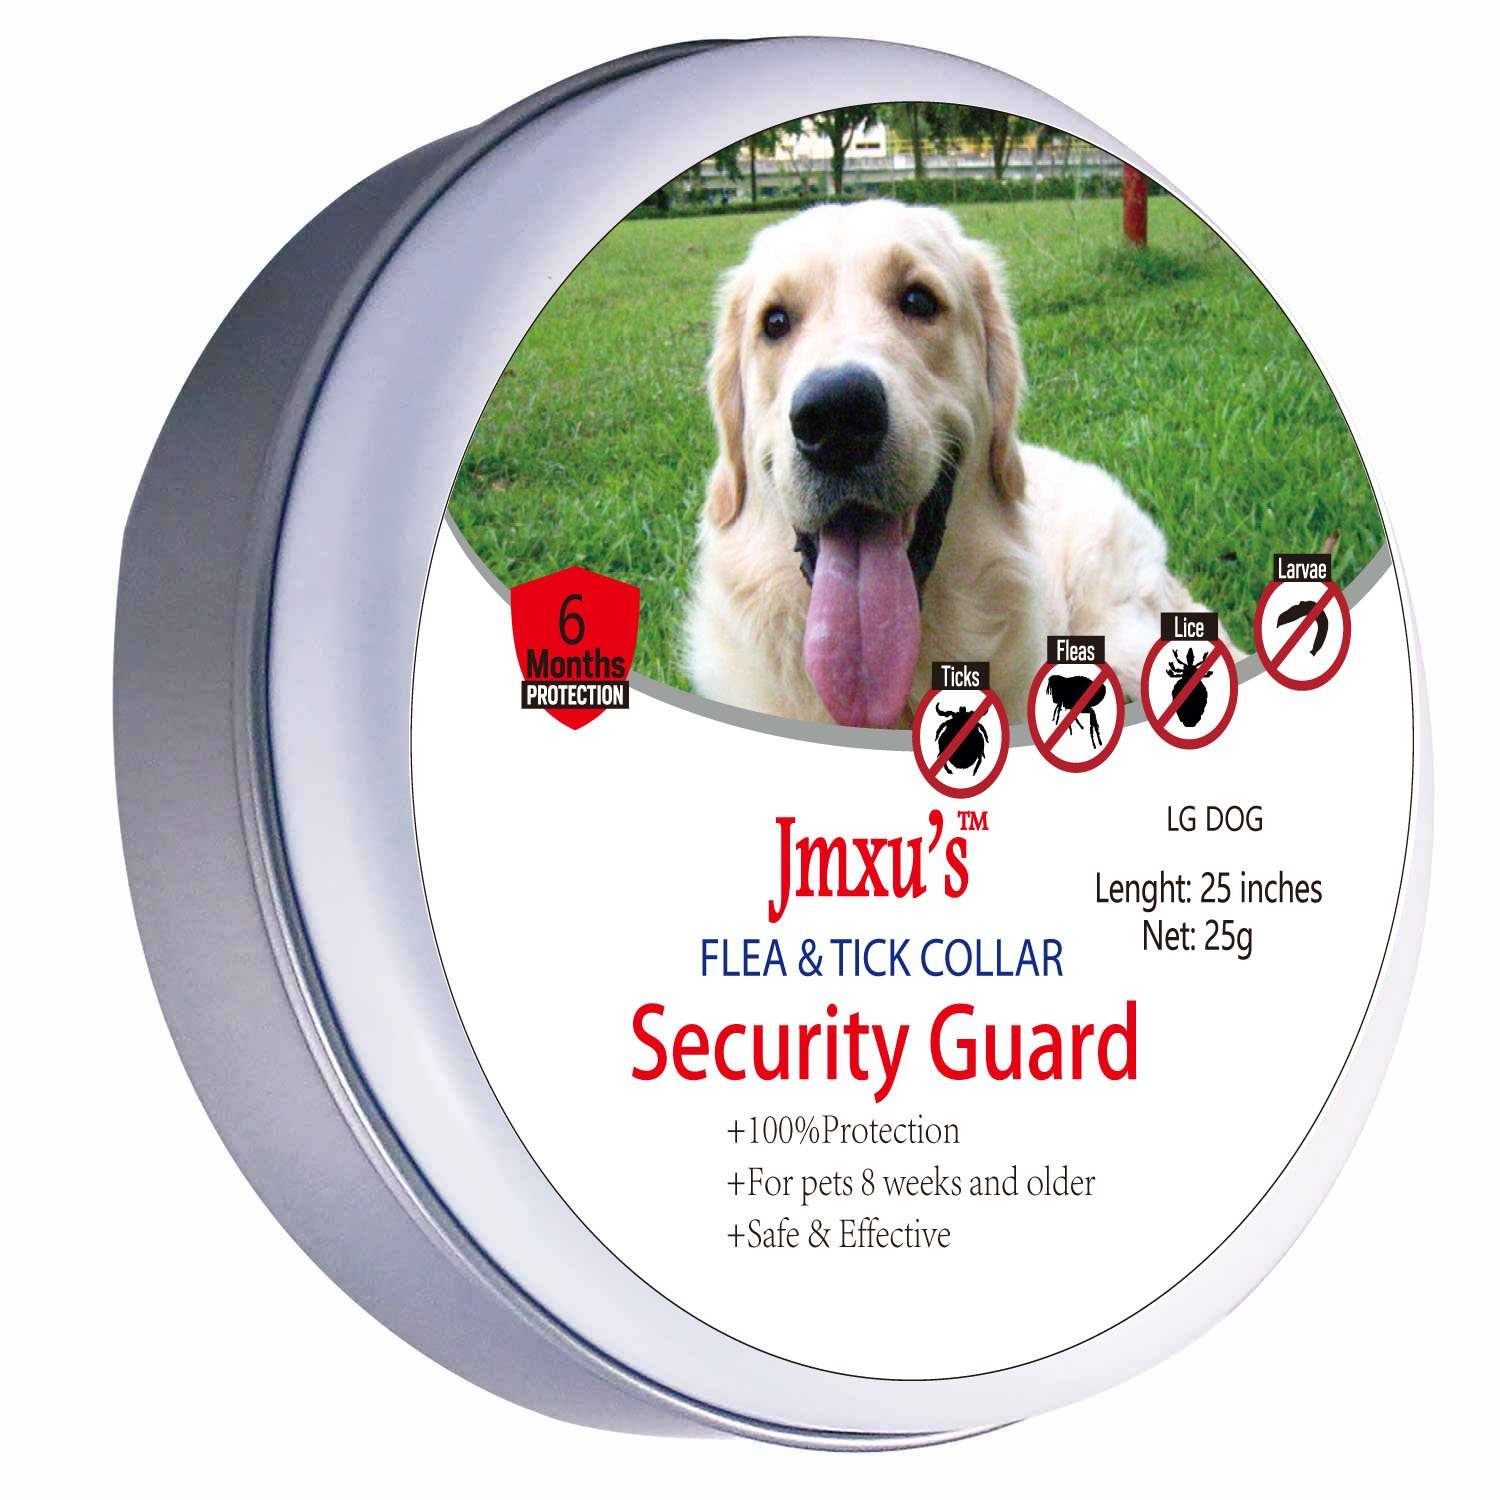 Flea and Tick collar for Large Dog, 6 Month Protection